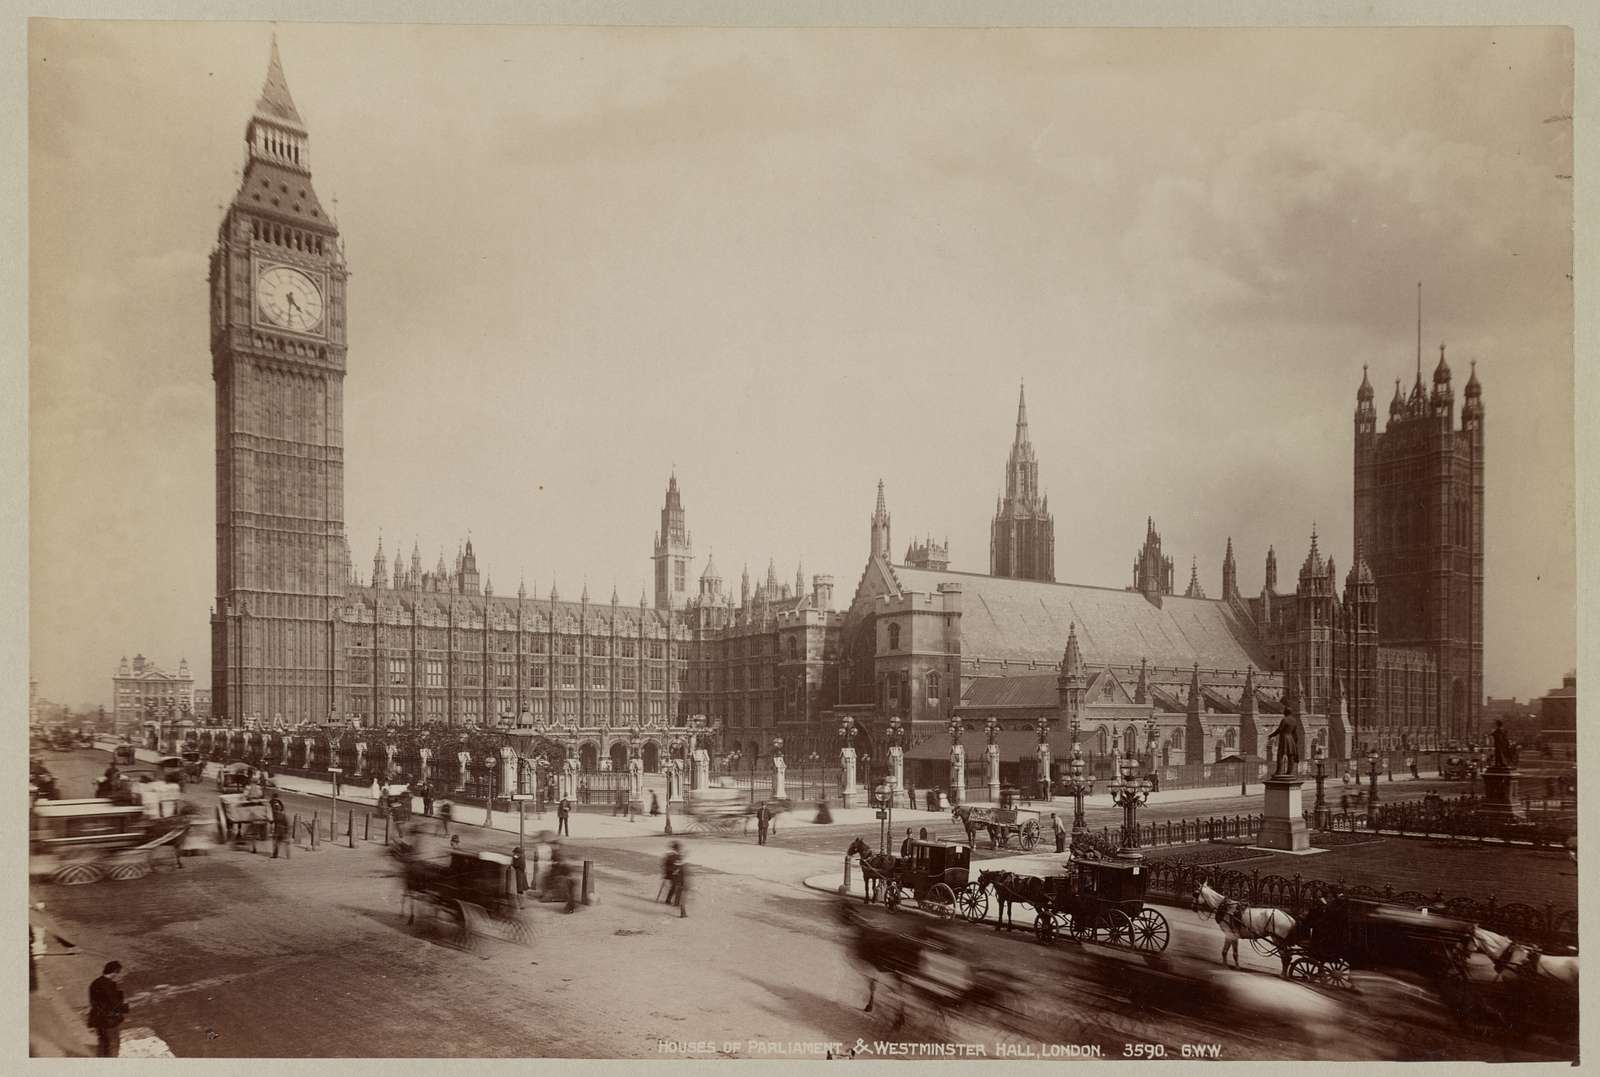 Houses of Parliament & Westminster Hall, London / G.W.W.